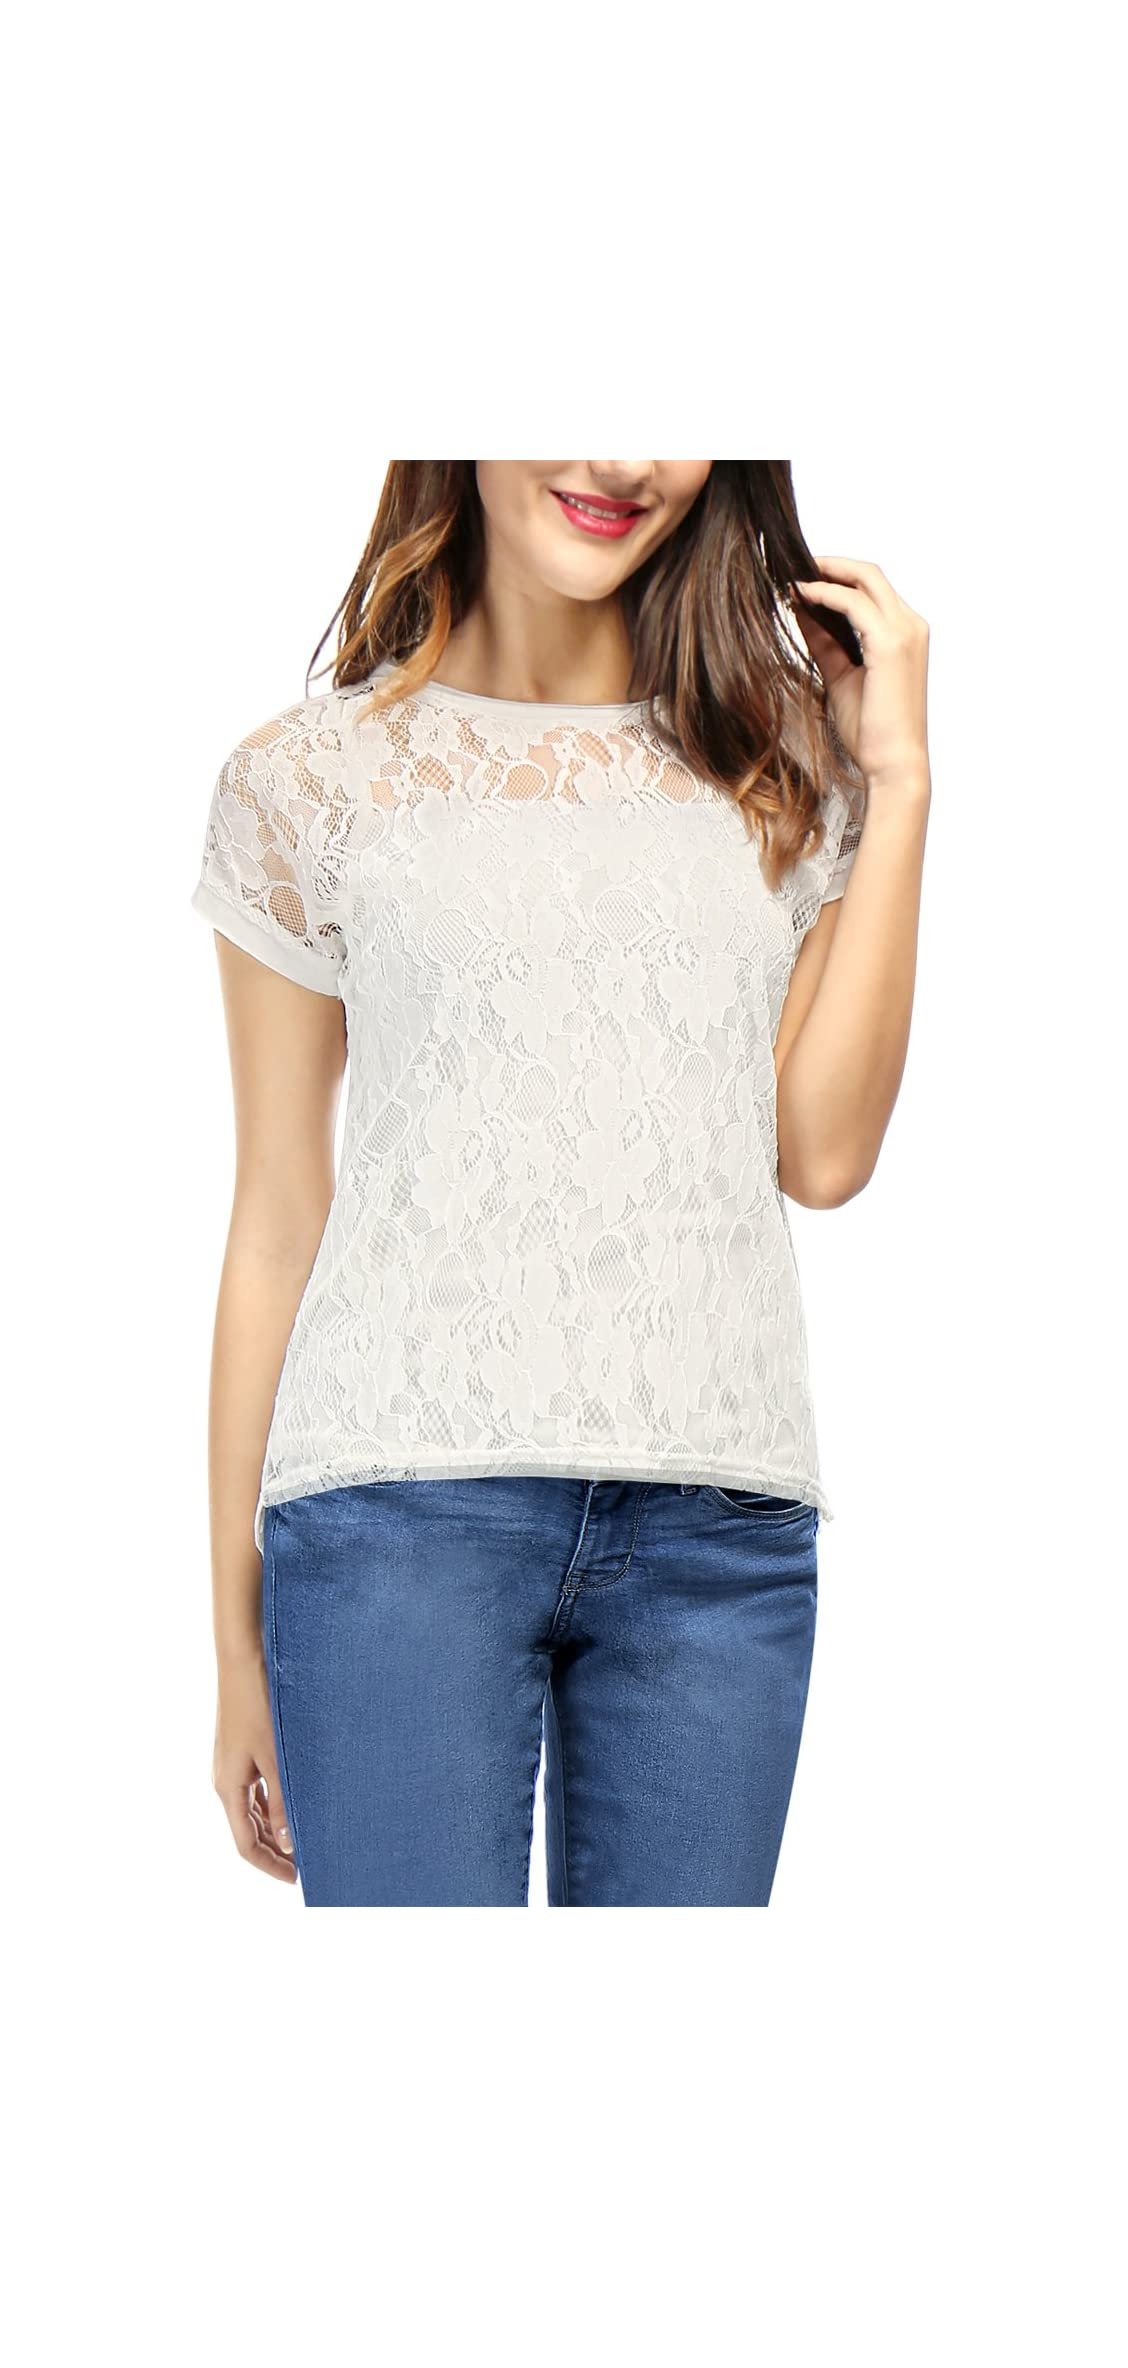 Women's Round Neck See Through Sheer Floral Lace Shirt